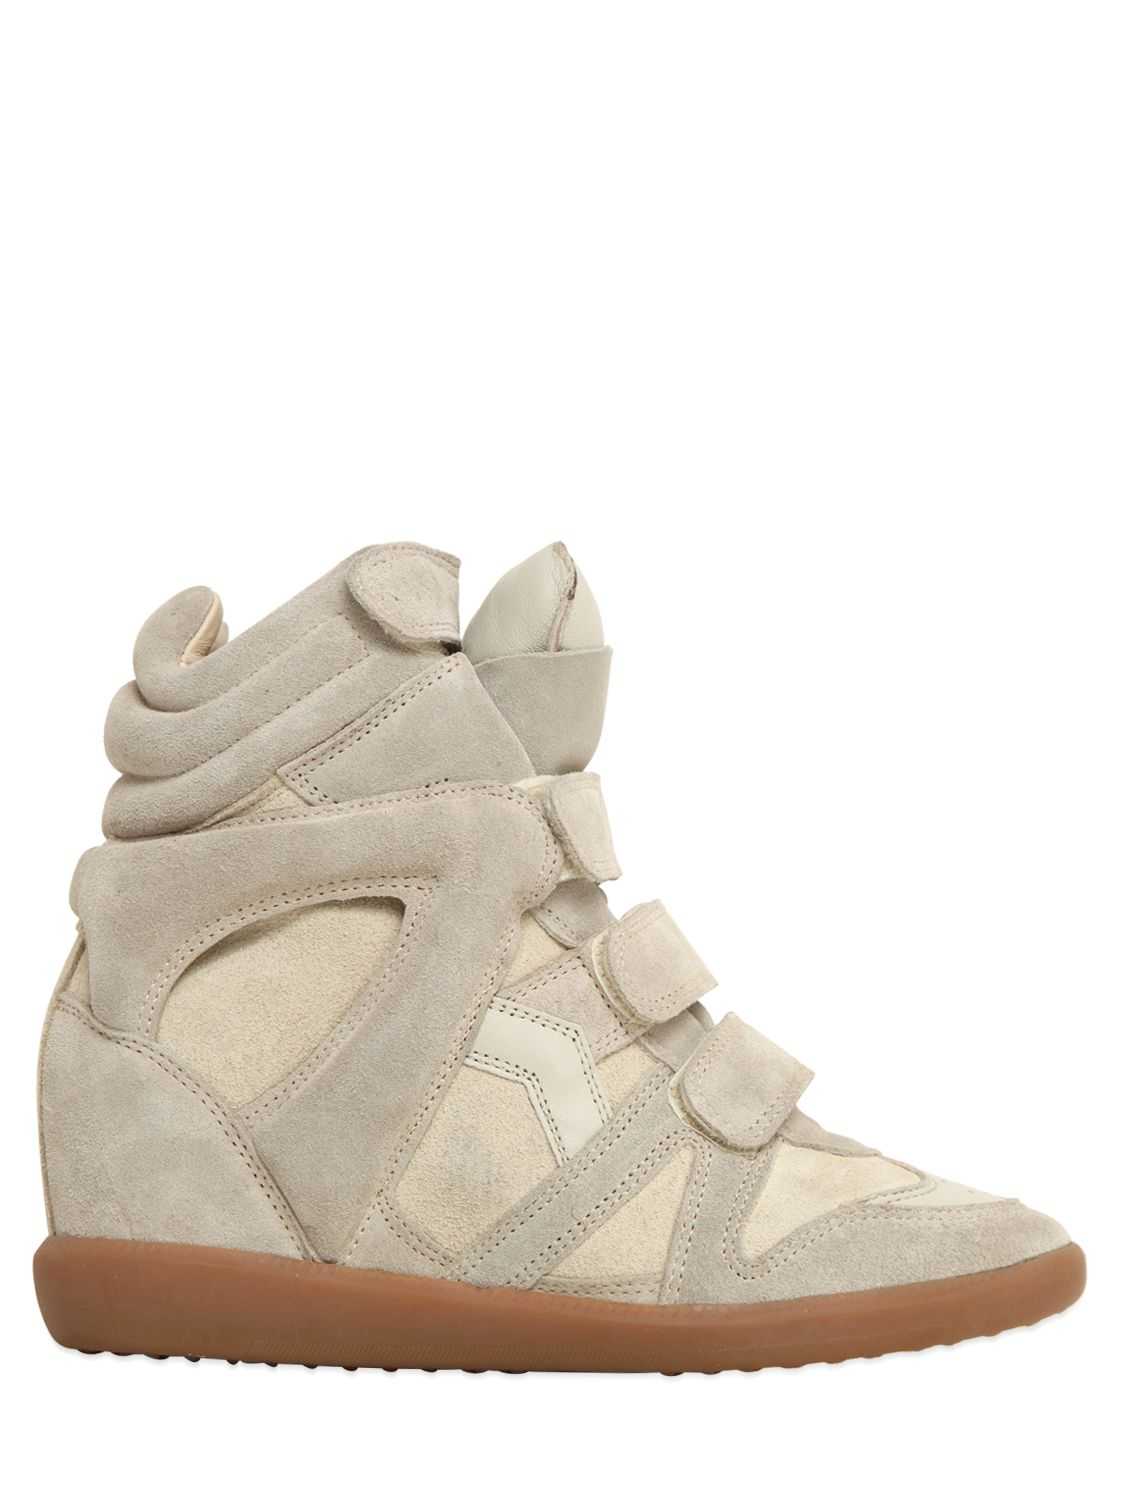 isabel marant etoile 80mm bekett suede wedge sneakers in multicolor ecru lyst. Black Bedroom Furniture Sets. Home Design Ideas